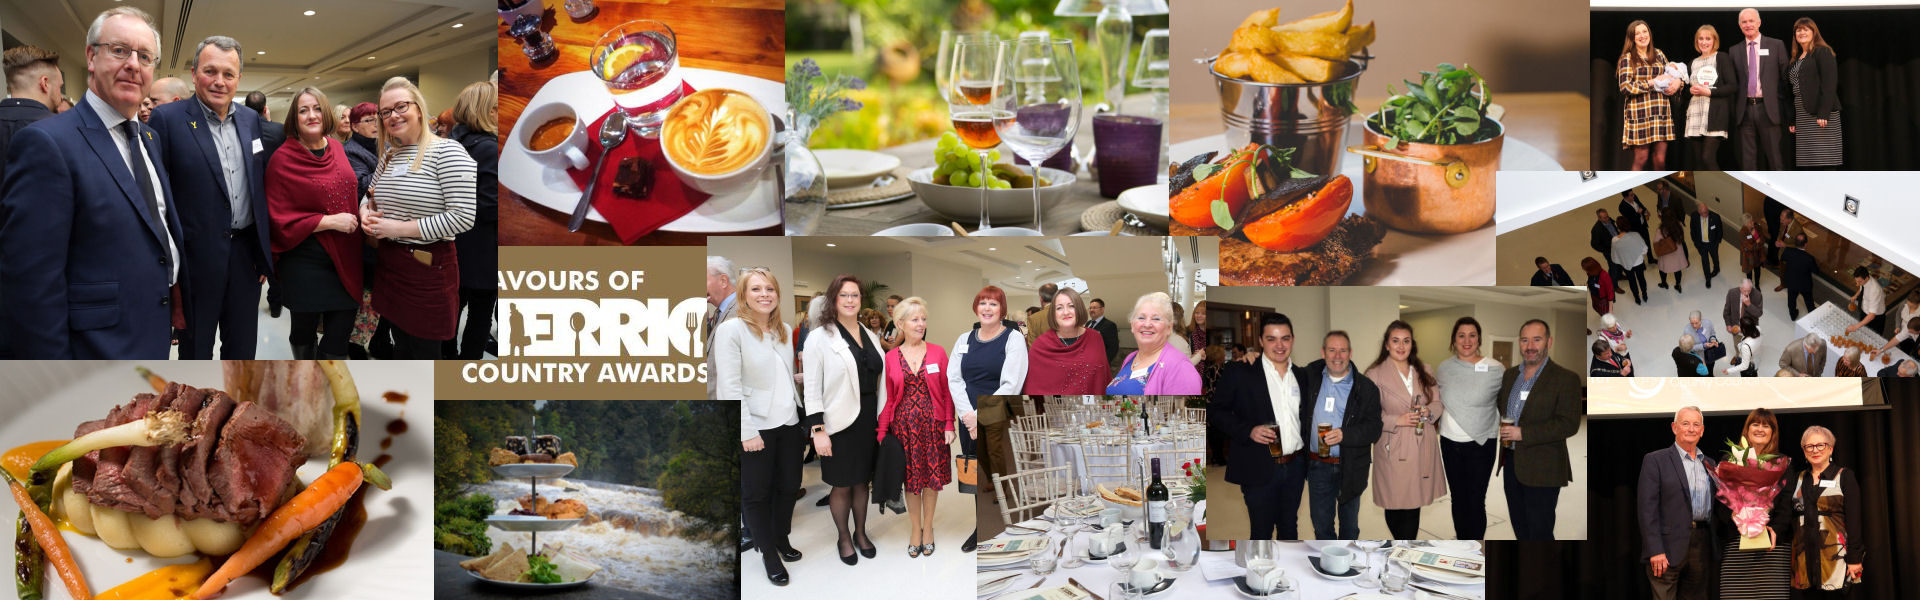 The Flavours of Herriot Country Awards event